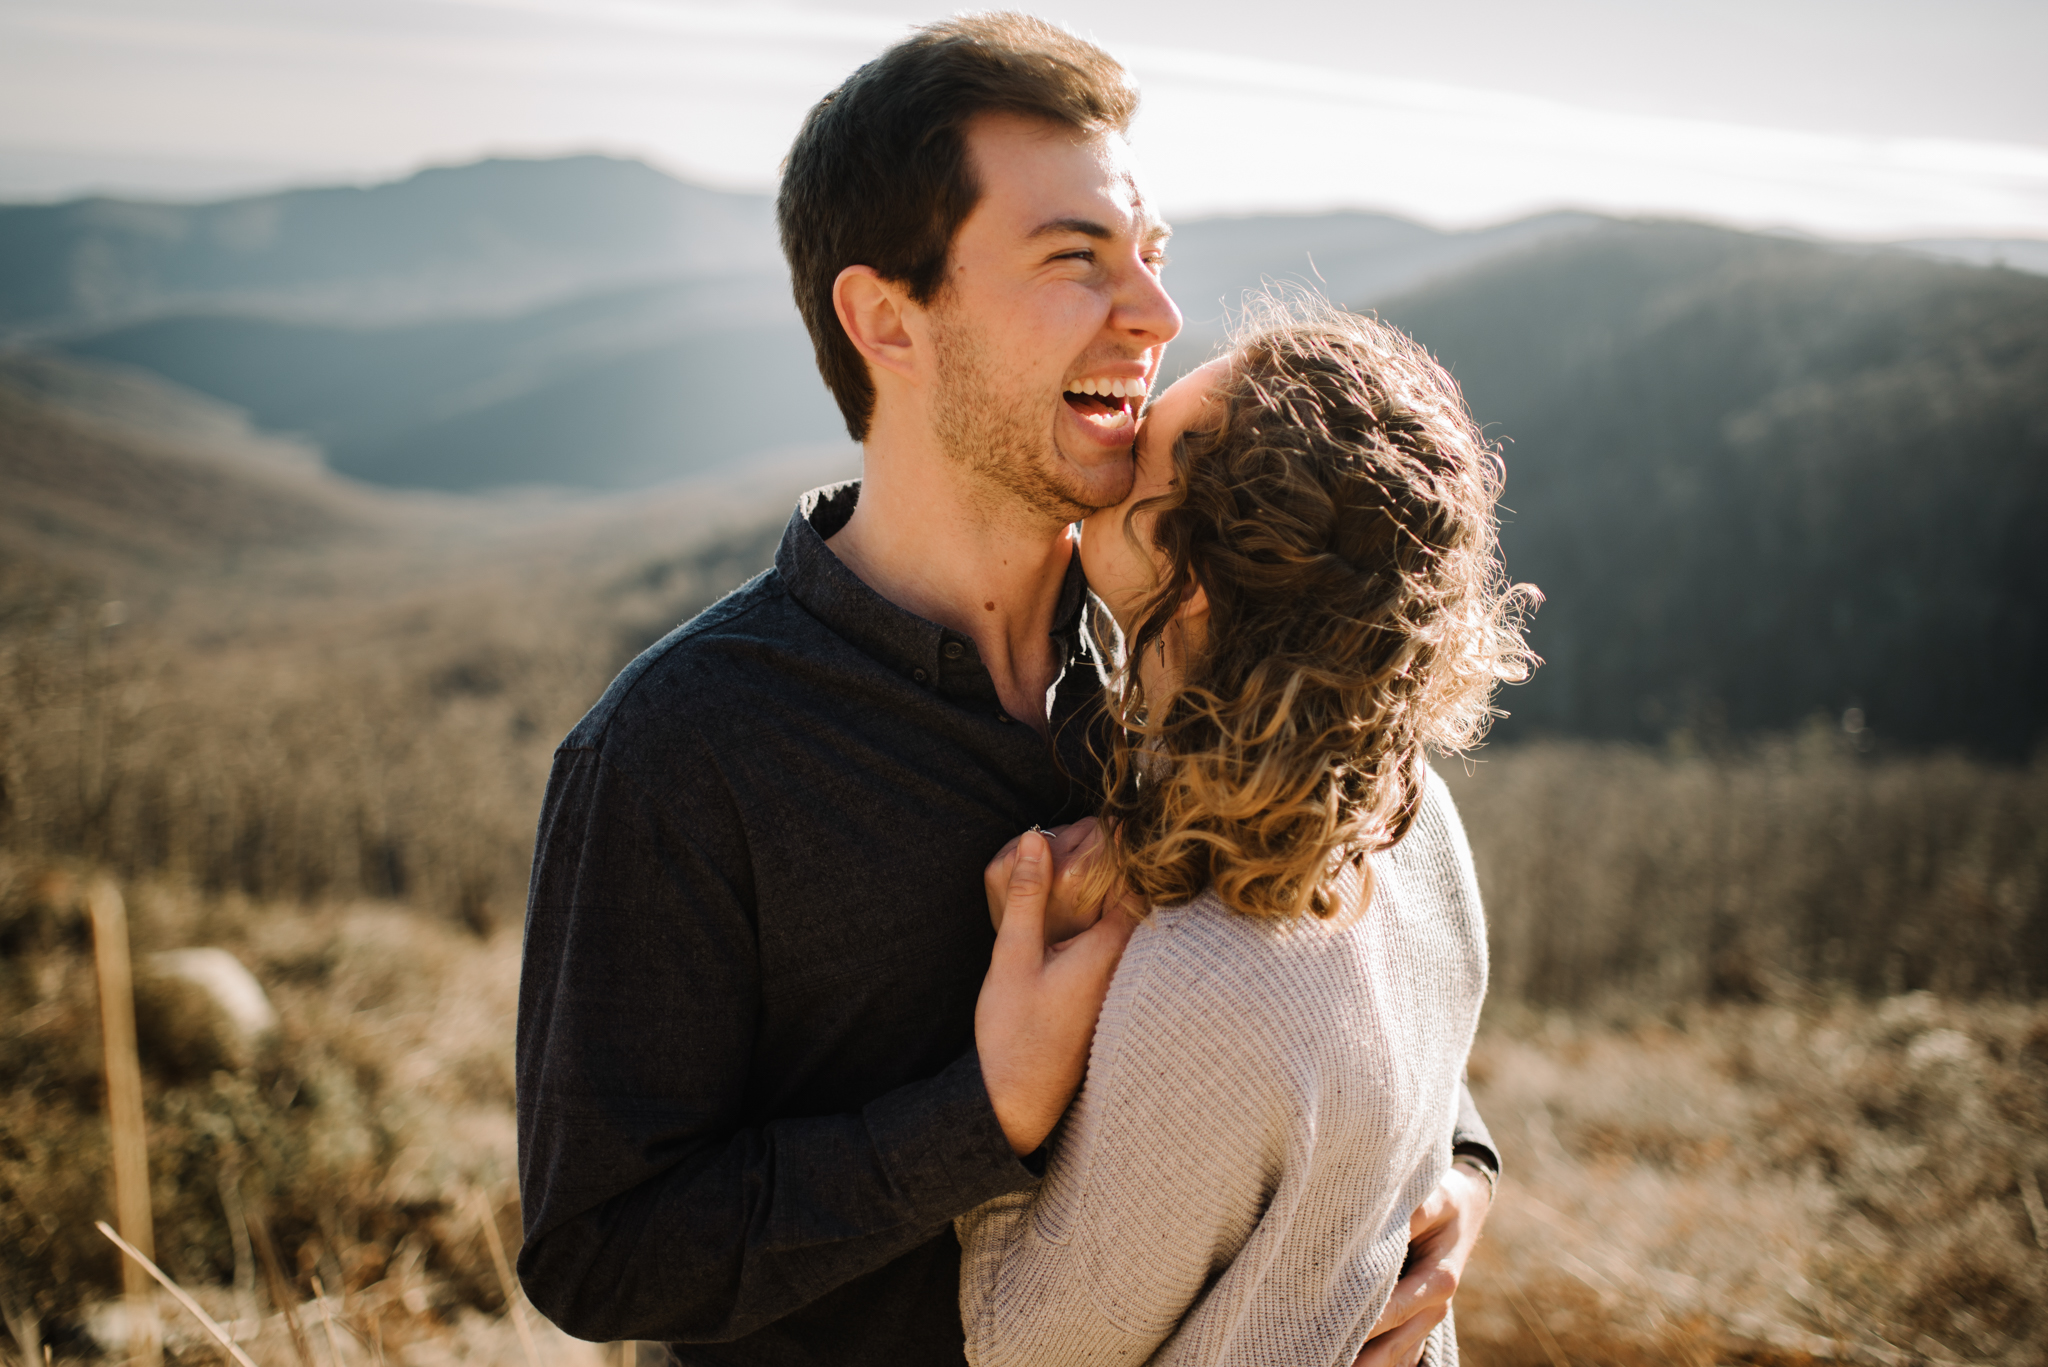 Alli and Mitchell - Shenandoah National Park Adventure Winter Engagement Session on Skyline Drive - White Sails Creative Elopement Photography_26.JPG